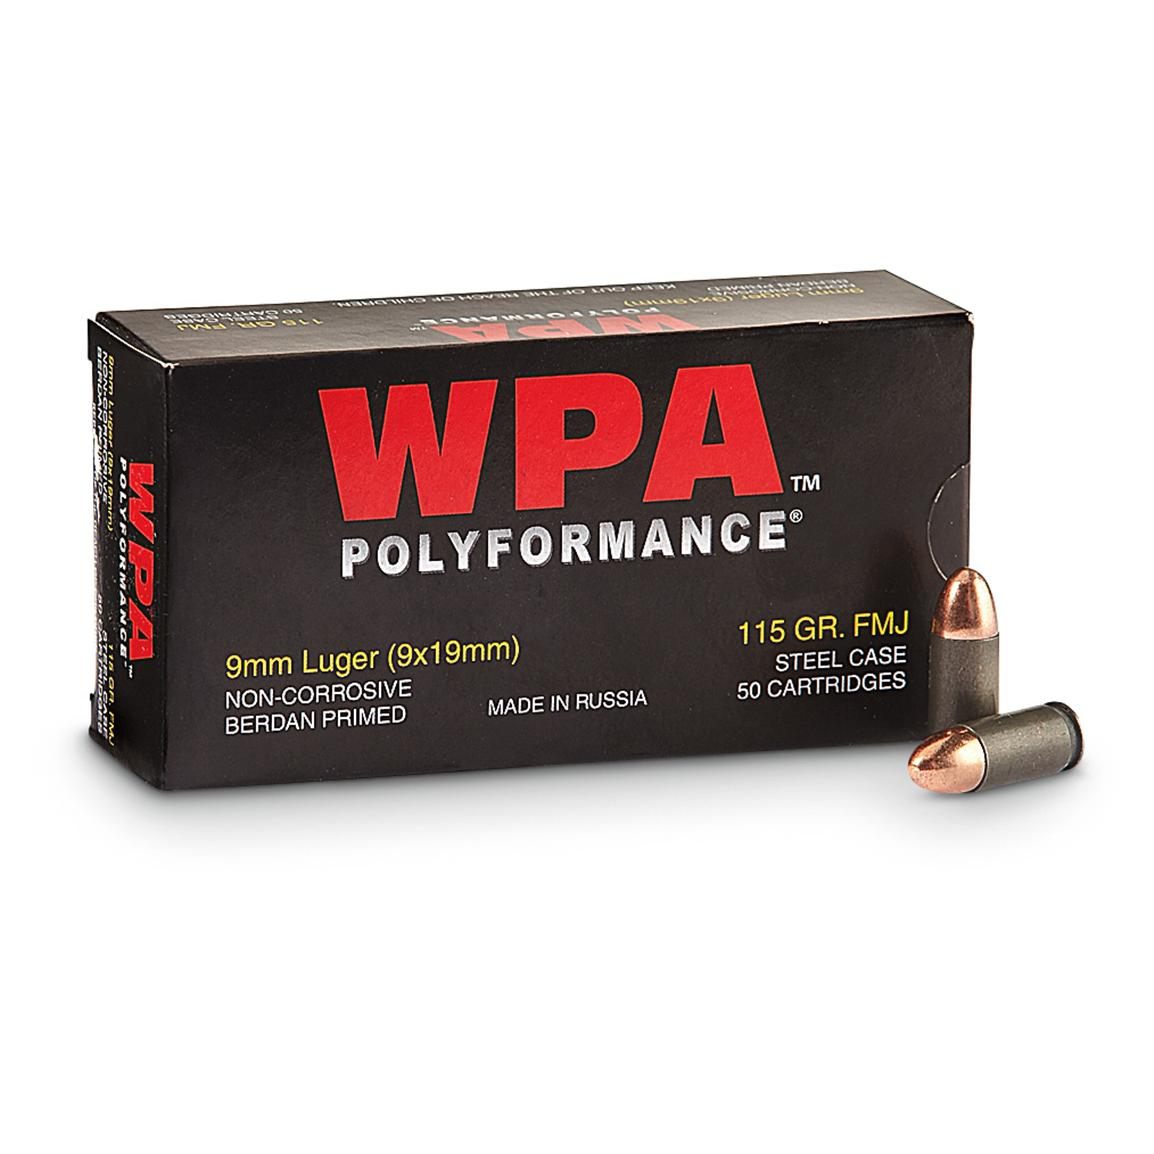 WPA Polyformance, 9mm Luger, FMJBT, 115 Grain, 250 Rounds